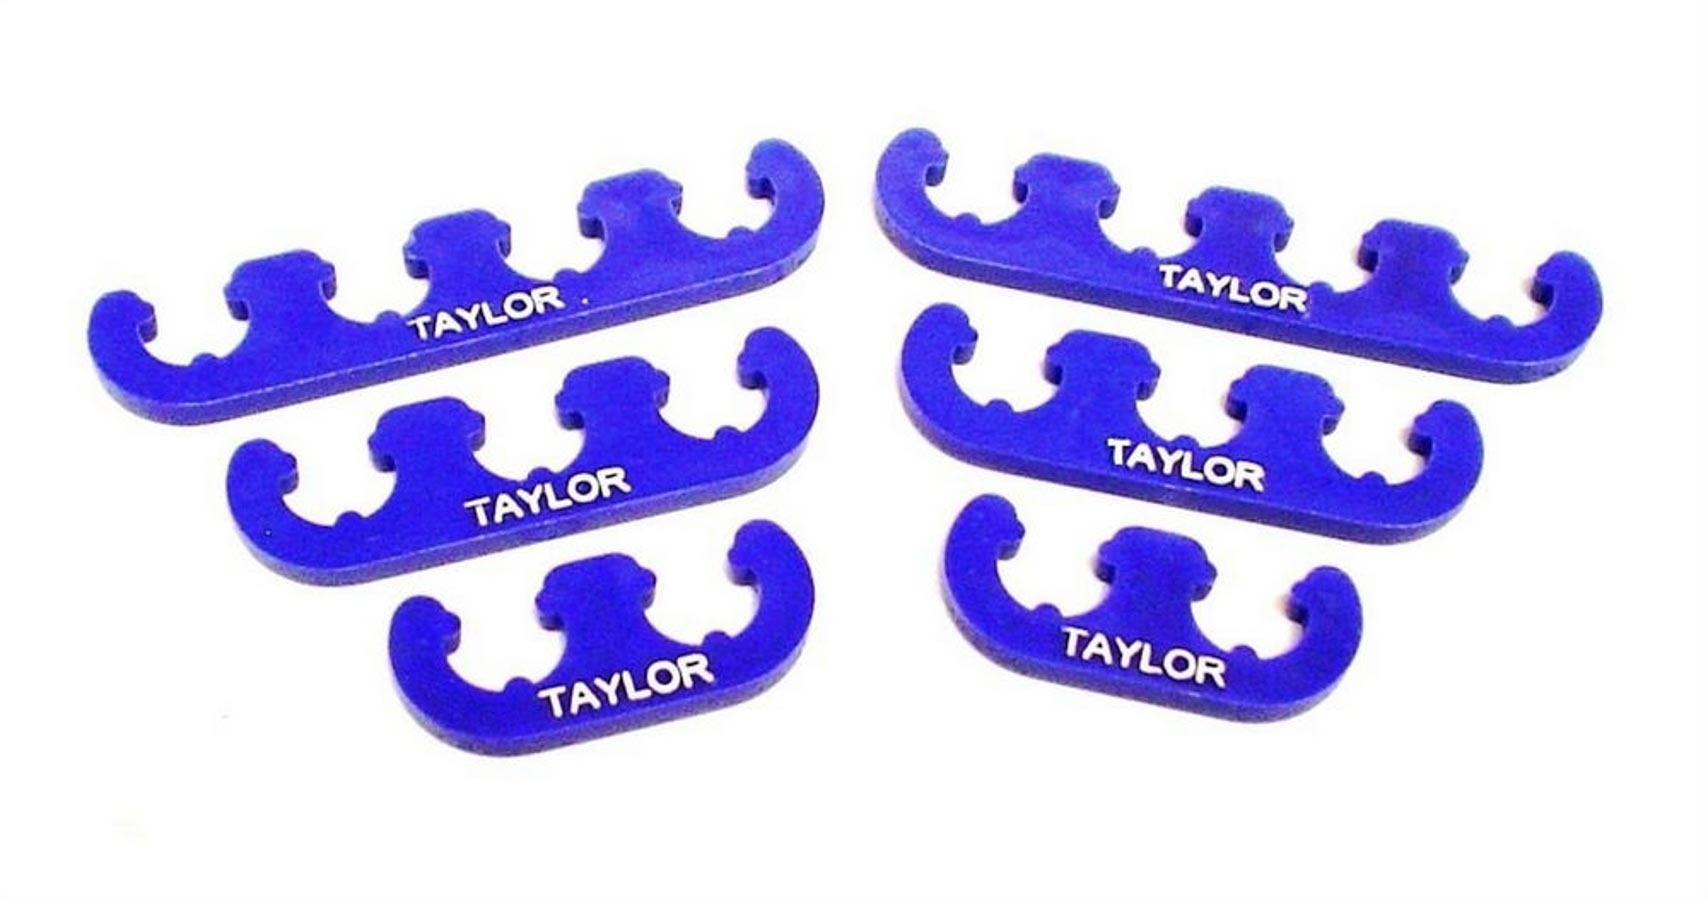 Taylor 42860 Spark Plug Wire Divider, 7-8 mm Wires, Nylon, Blue, Clip Style, Kit